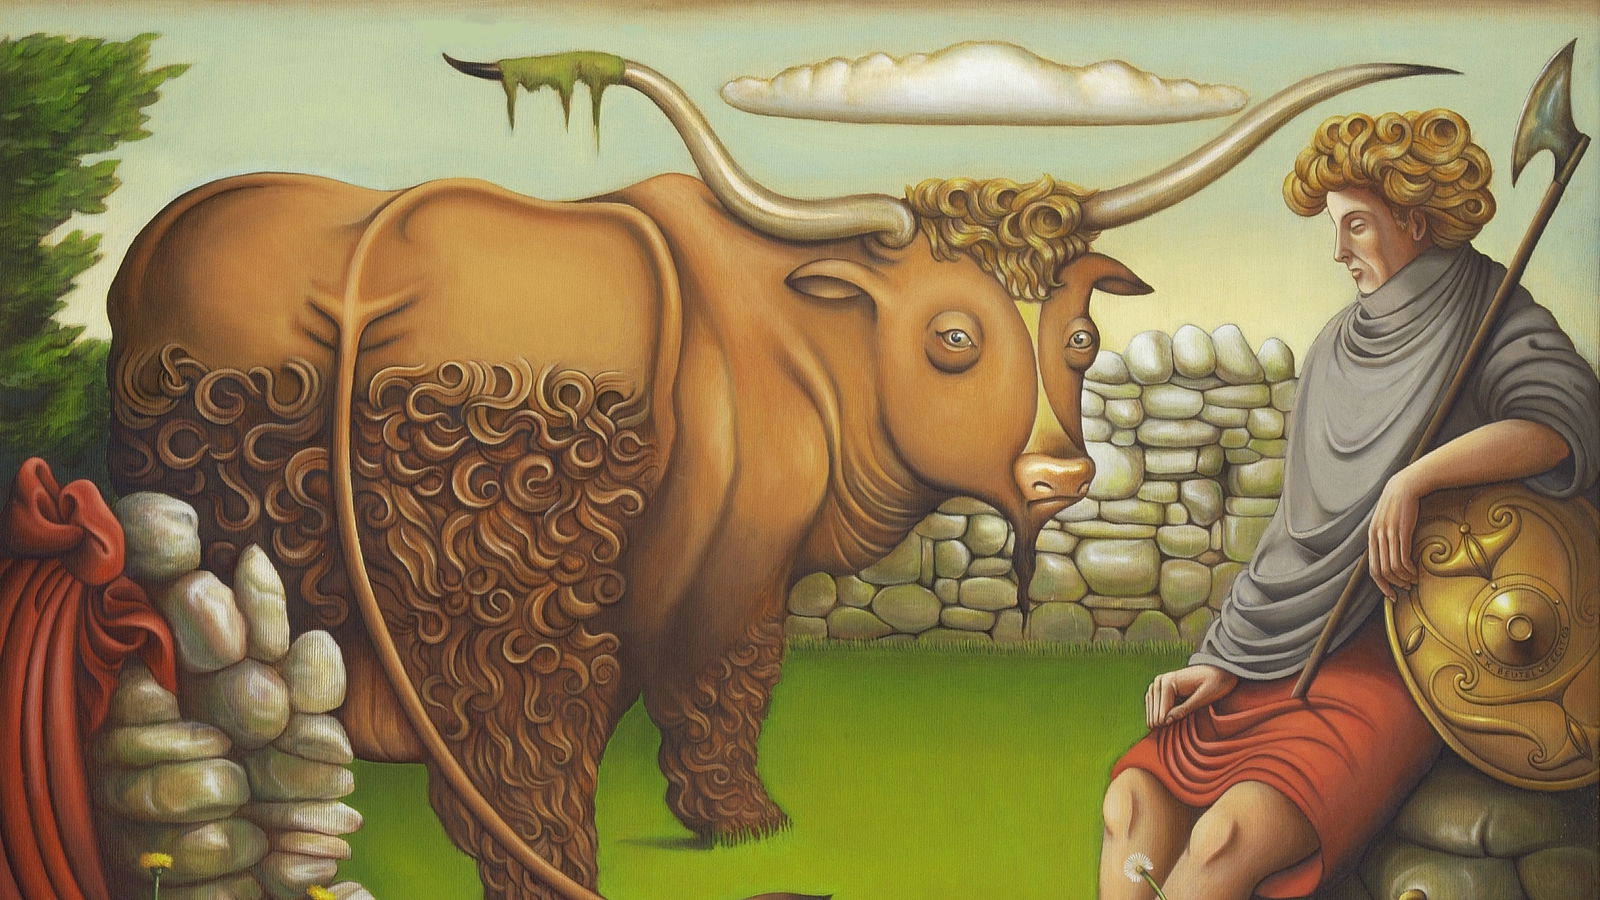 Image - Cú Chulainn and the Bull: Karl Beutel (2003) Armagh County Museum Collection